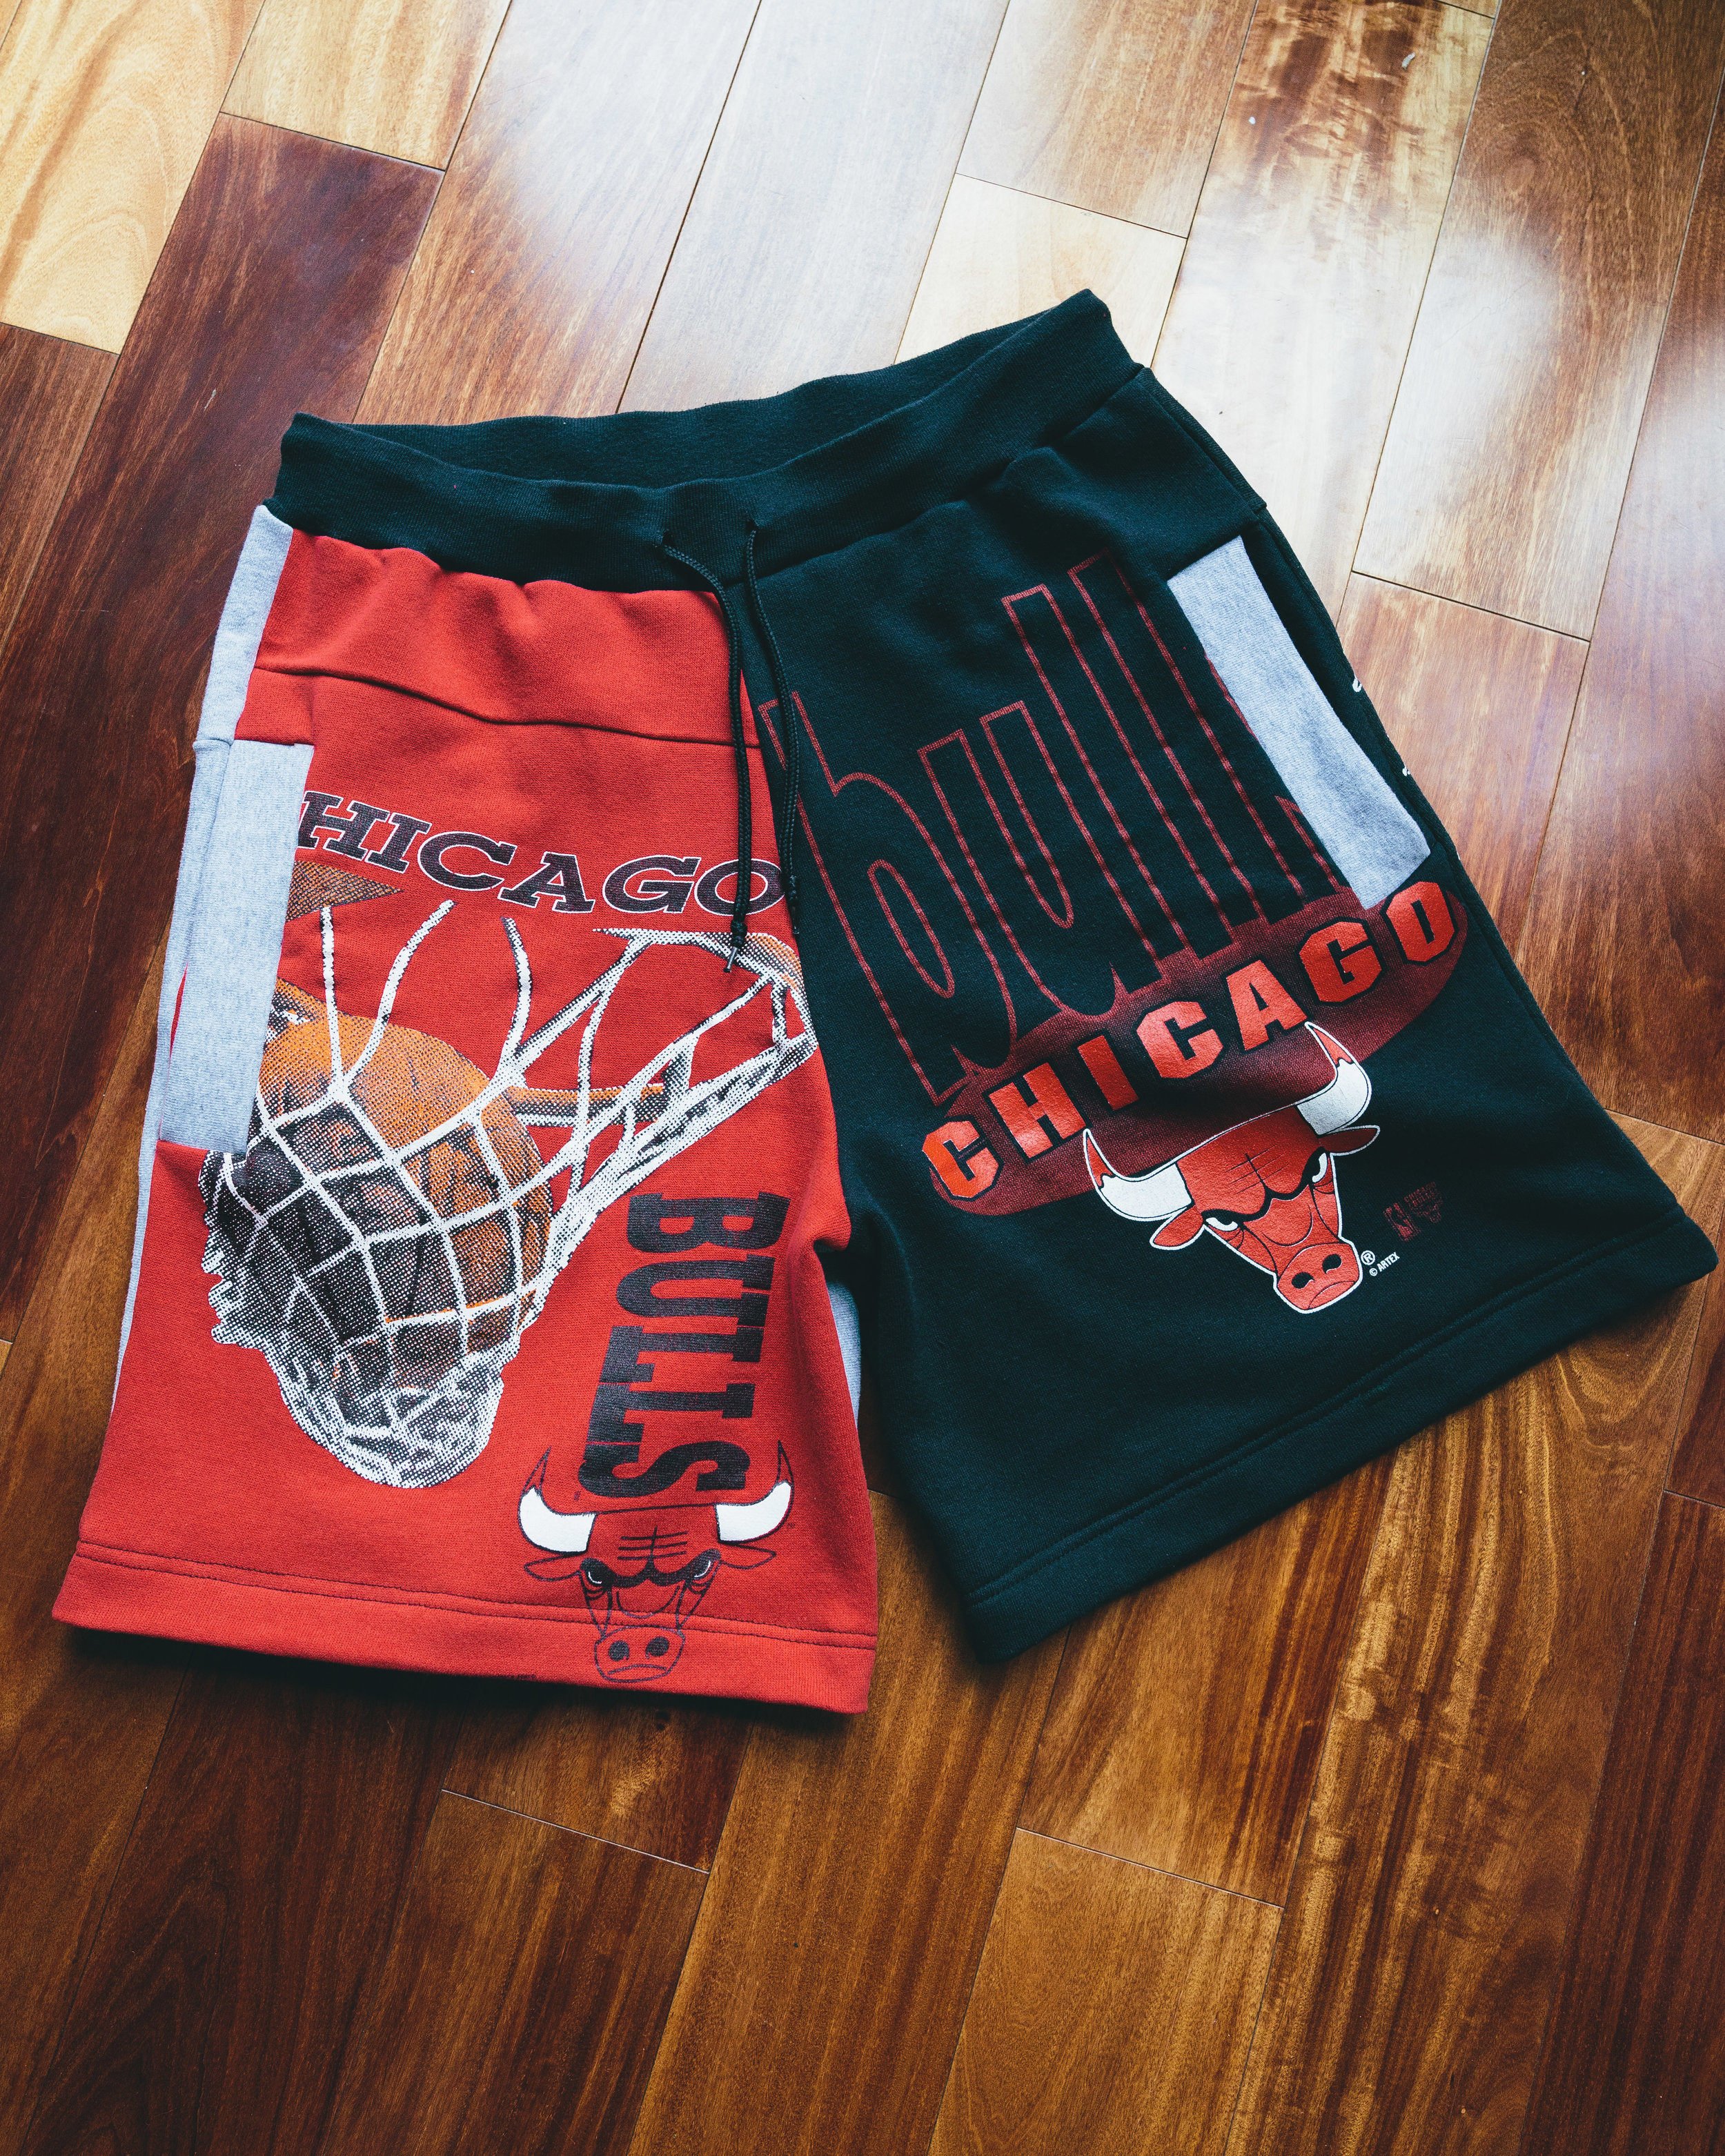 Bulls Shorts #2 - Made from several vintage Chicago bulls sweatshirts for a Chicago native.